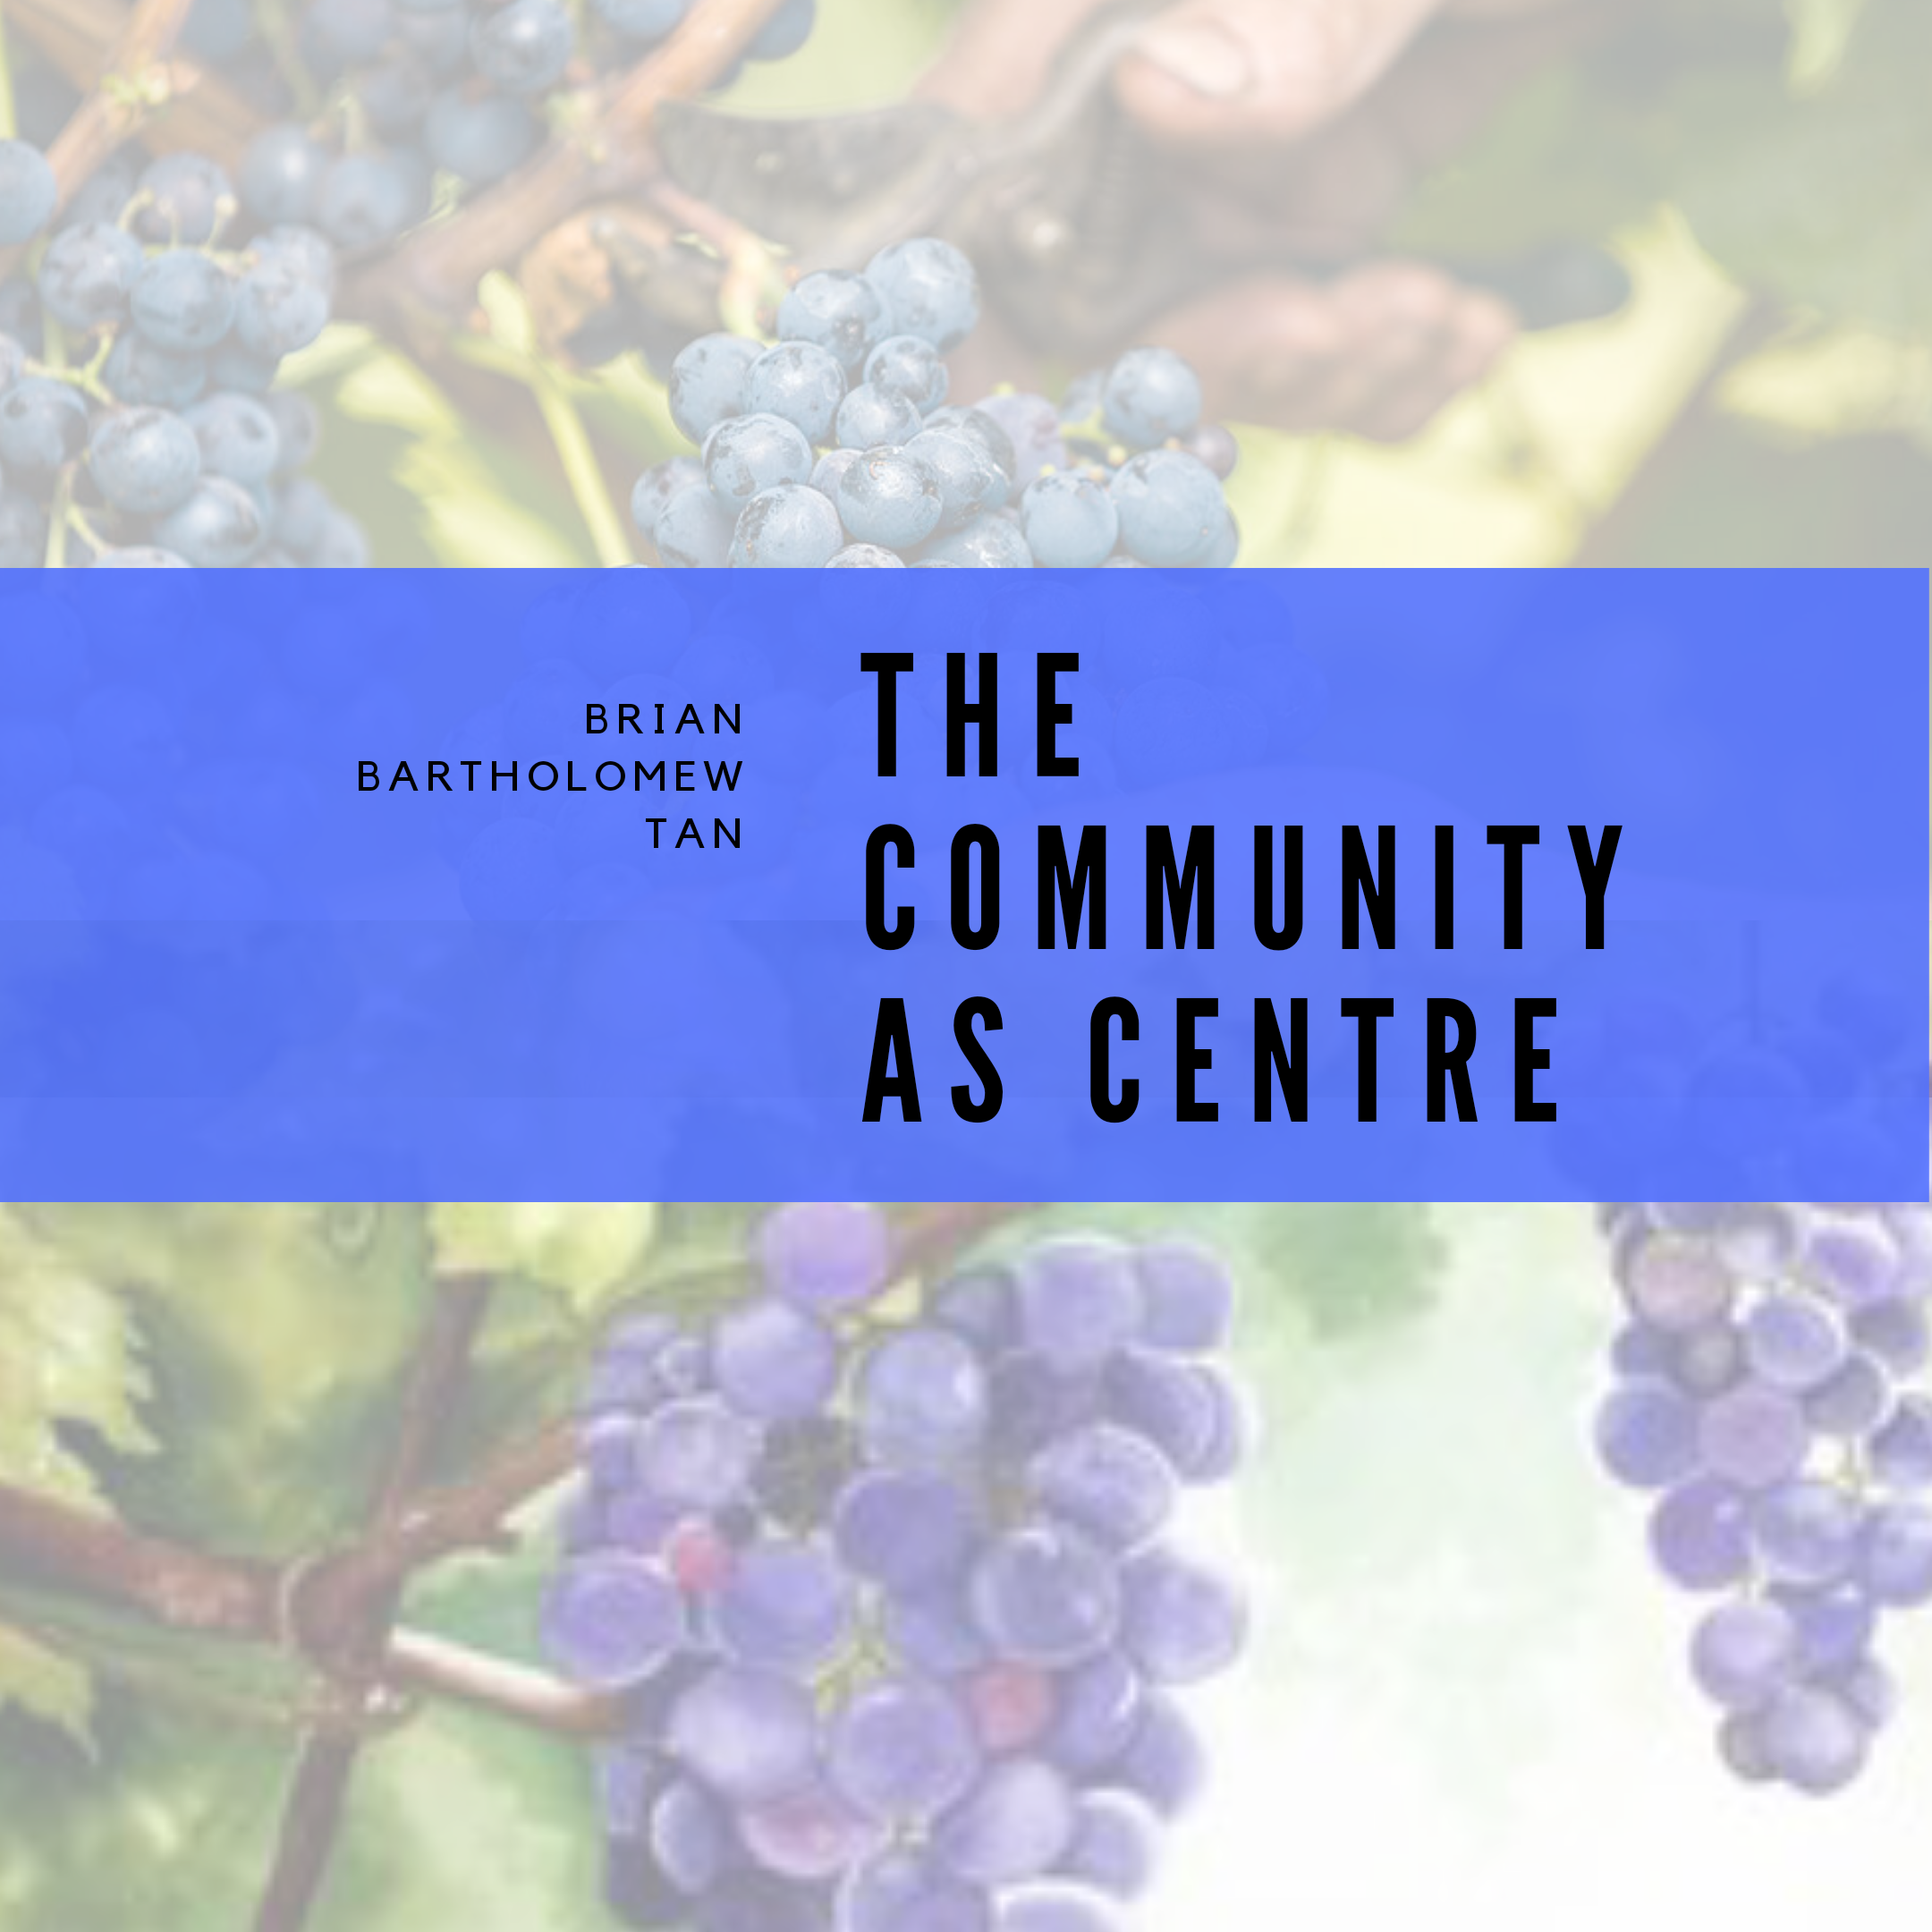 The Community as Centre